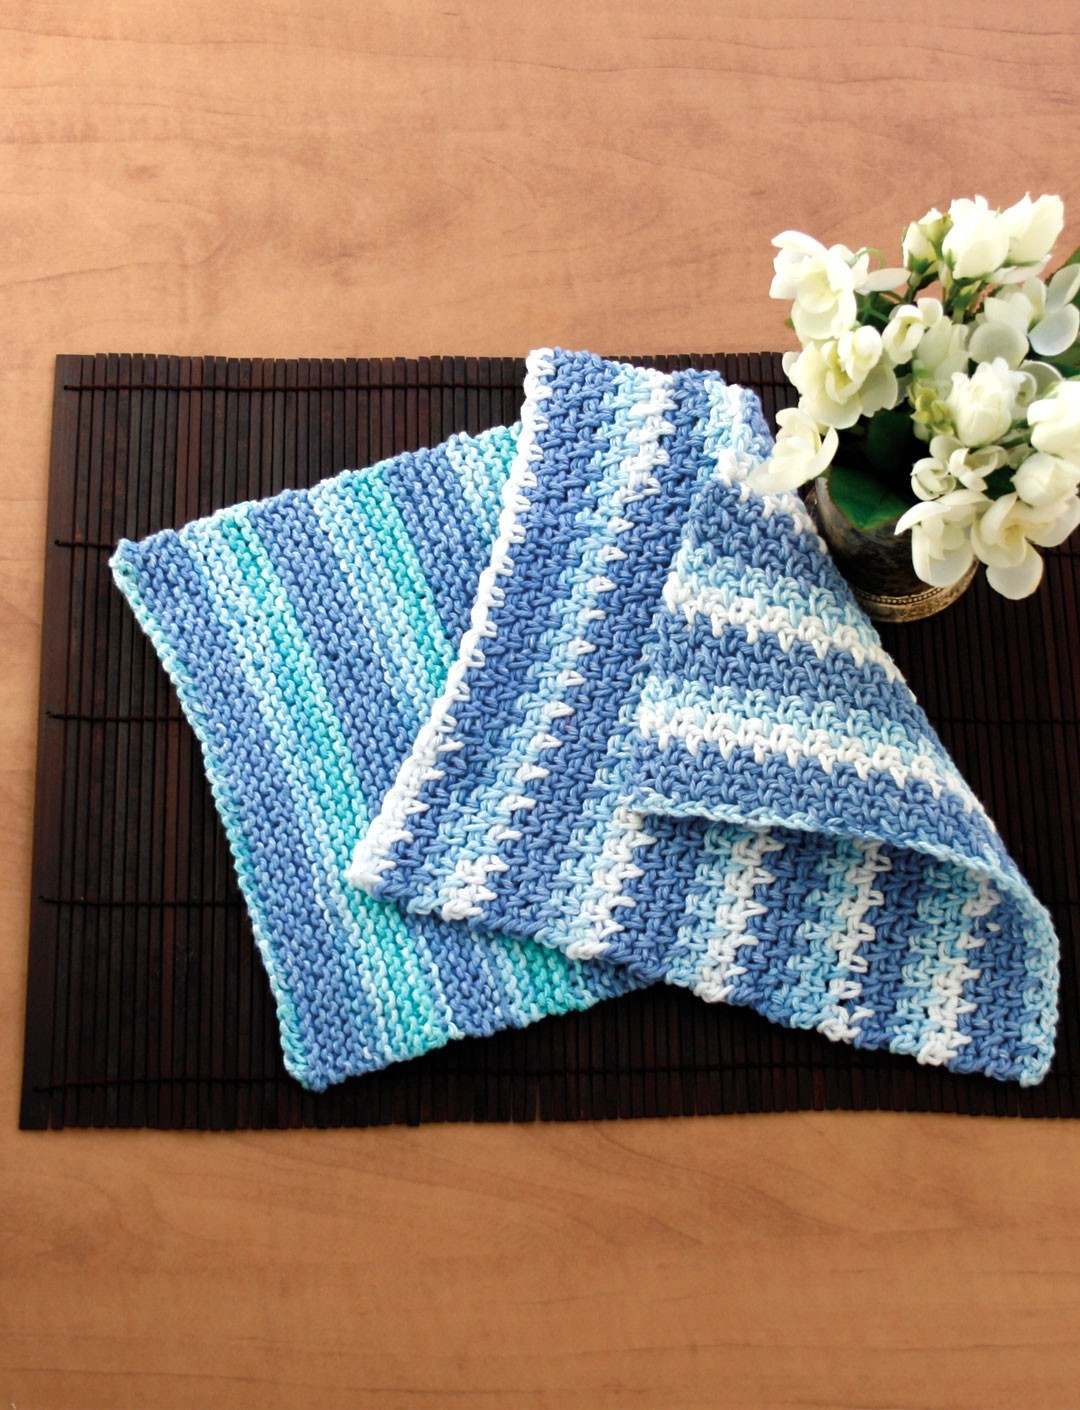 I Love This Cotton Yarn Crochet Patterns Lovely Dishcloth In Bernat Handicrafter Cotton solids Of Delightful 43 Ideas I Love This Cotton Yarn Crochet Patterns